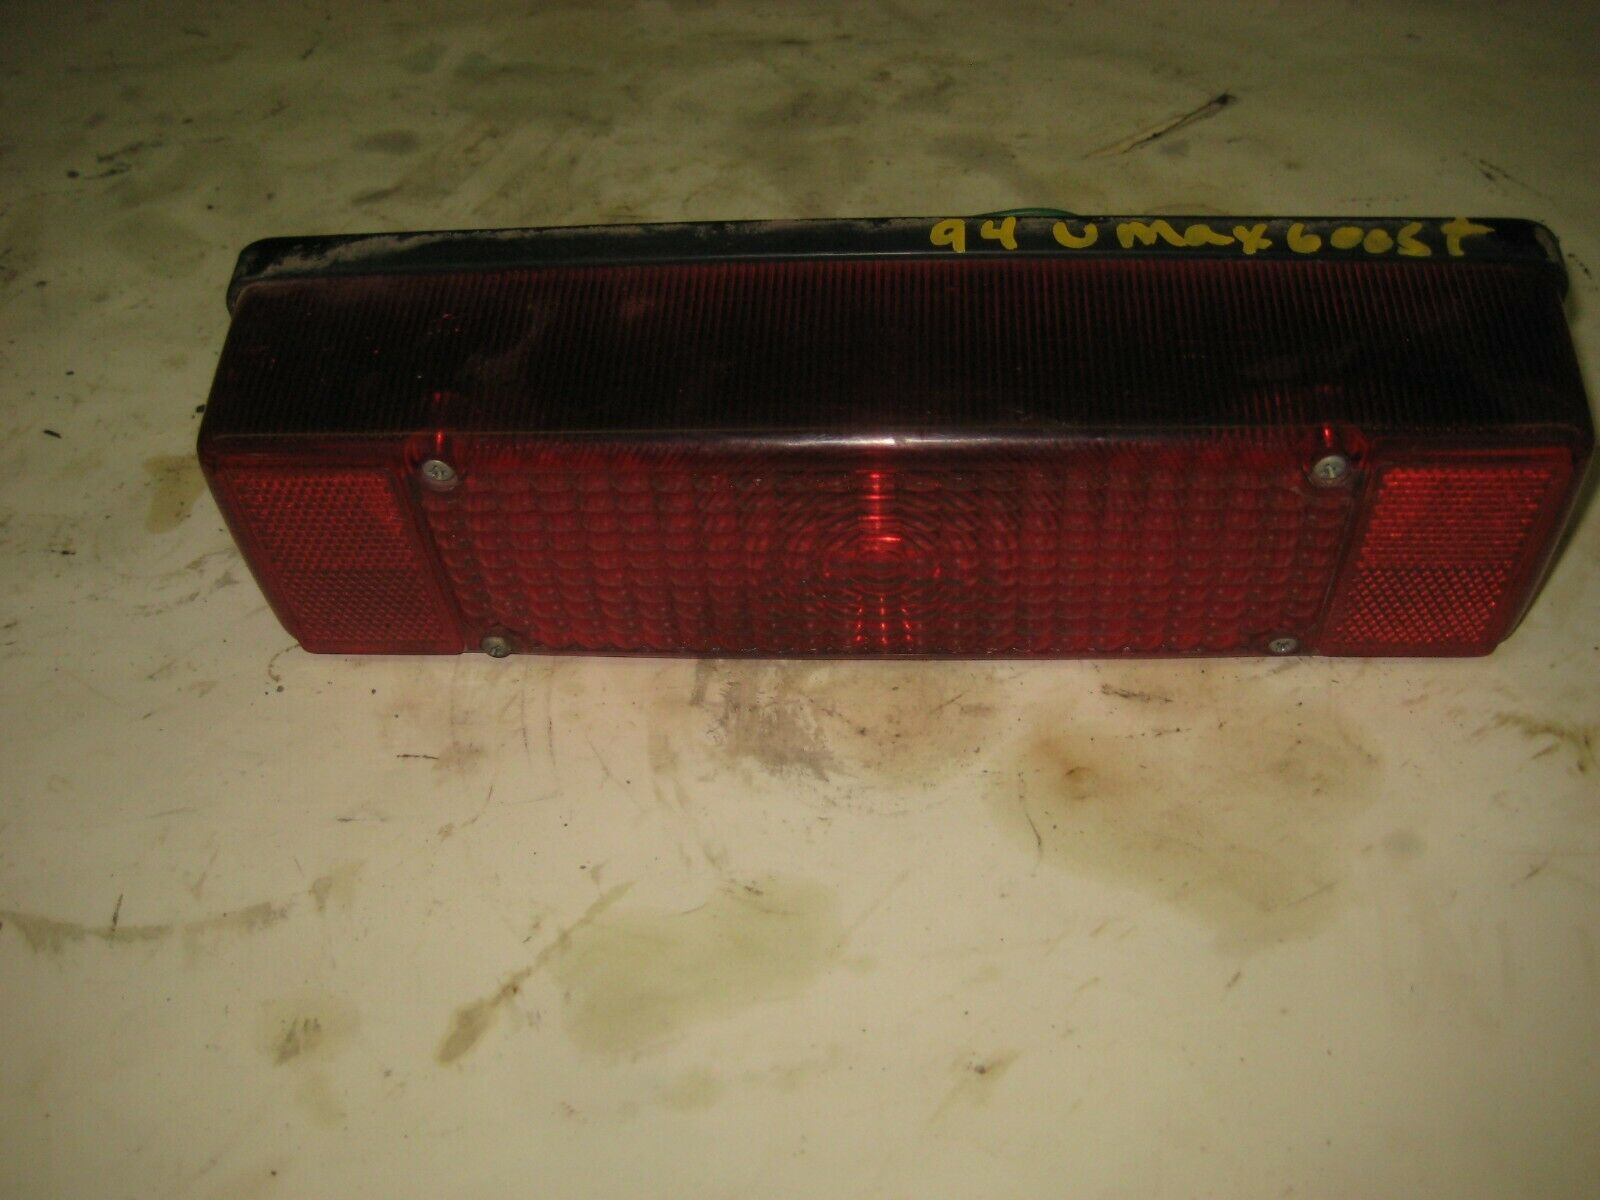 1994 Yamaha VMAX 600 ST Snowmobile Taillight Assembly